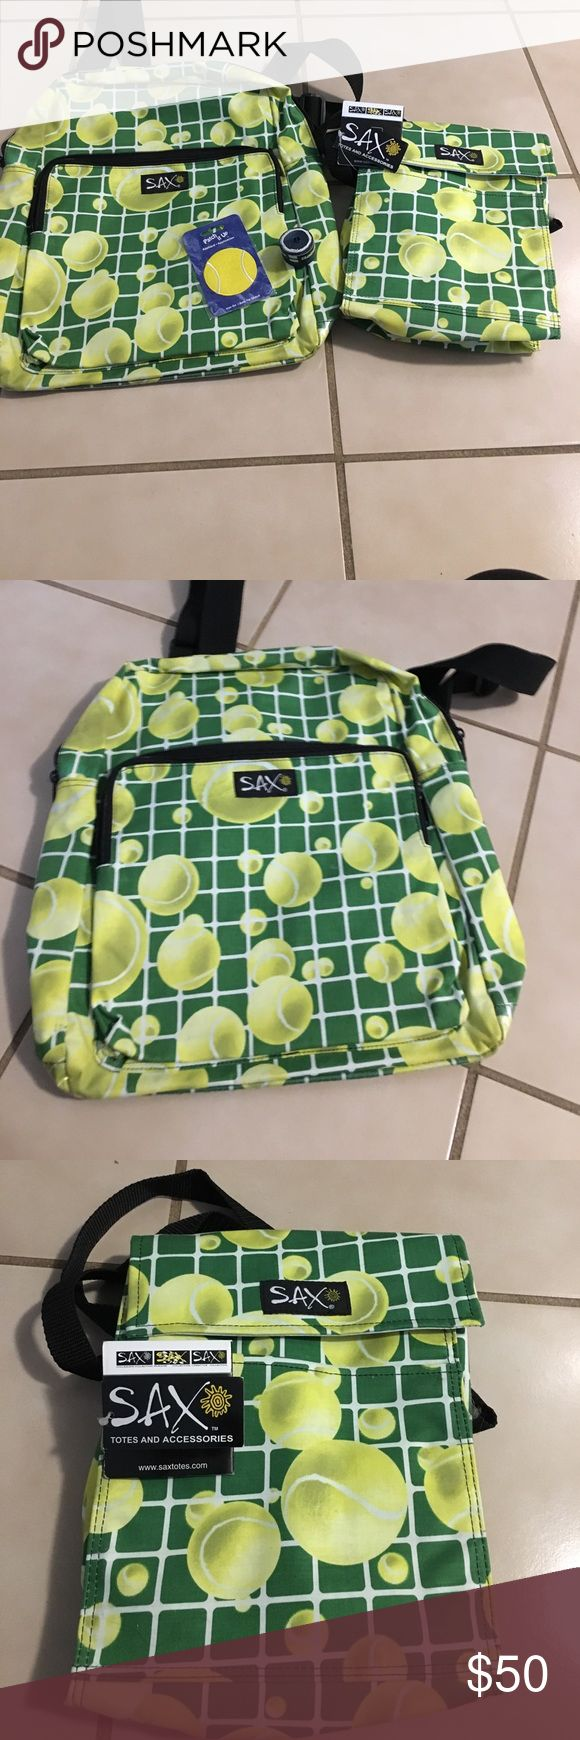 Tennis Anyone? 🎾🎾🎾🎾 Tennis, tennis!!!!! Full size tennis back pack.  Insulated lunch bag, tennis ball patch and racquet tape.  Lunch bag New with tags, so is patch and tape. The backpack was either never used or used once!  How fun for the tennis player!  You get all 4 items.🎾🎾🎾 Bags Backpacks